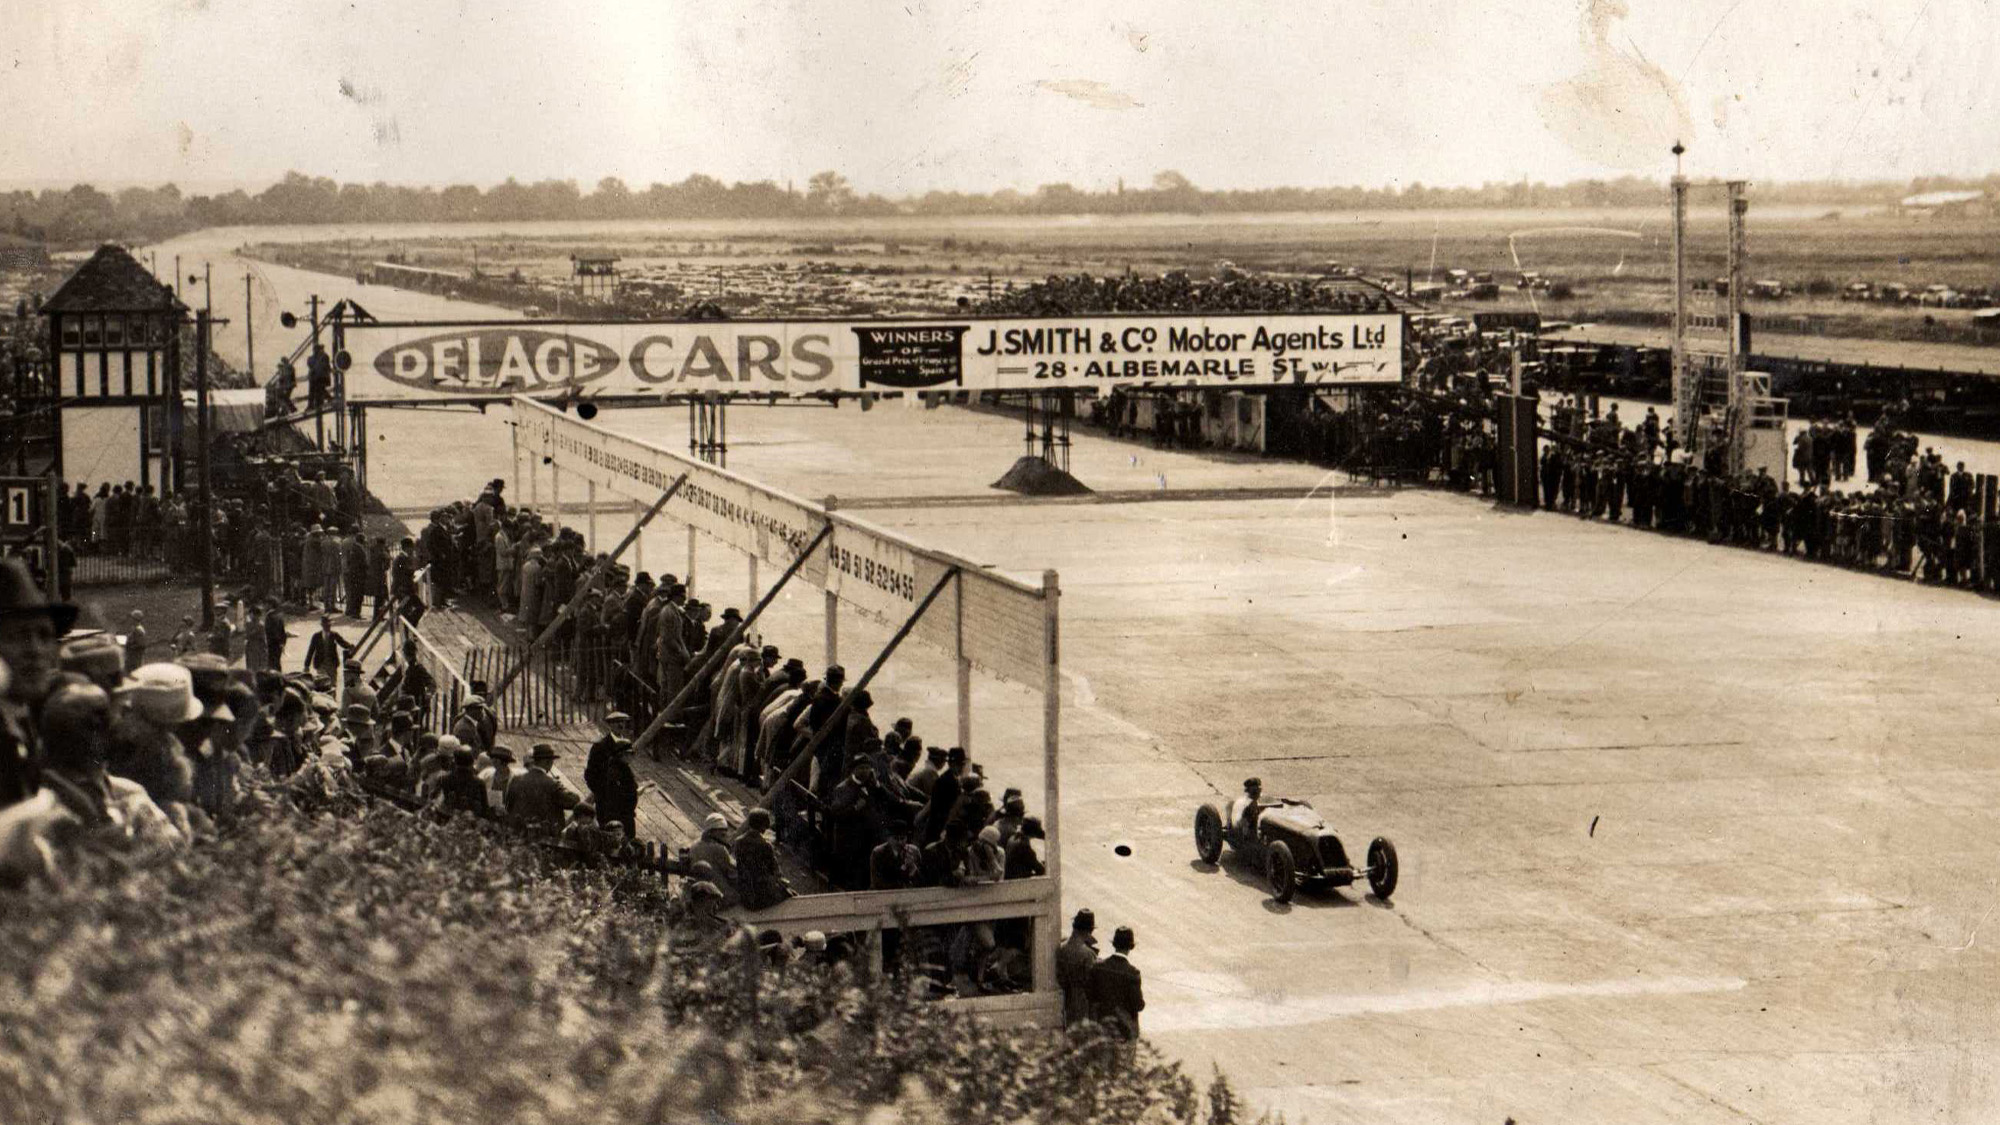 Scene of the first British grand prix at Brooklands in 1926